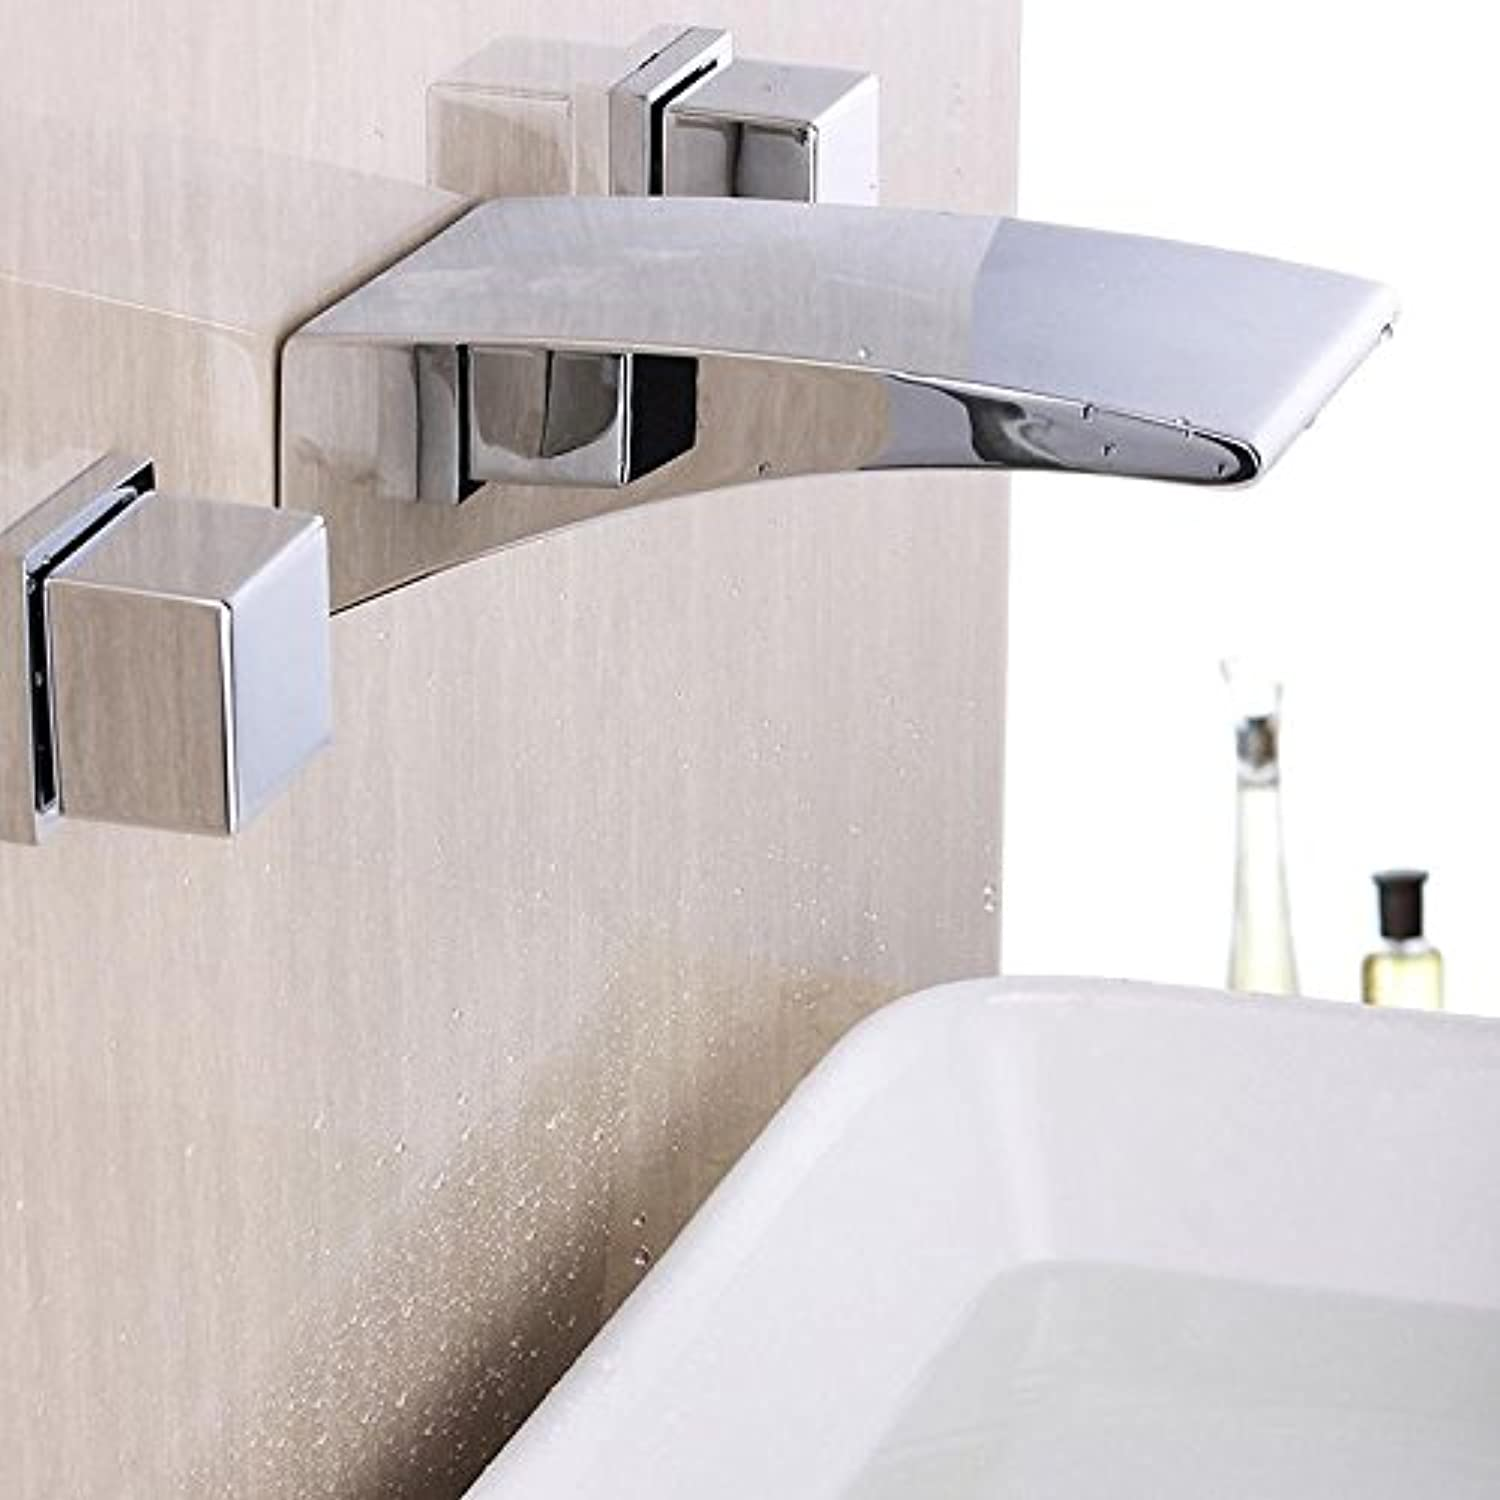 FEN Chrome-plated waterfall into the wall three-piece bathroom bathroom faucet faucet